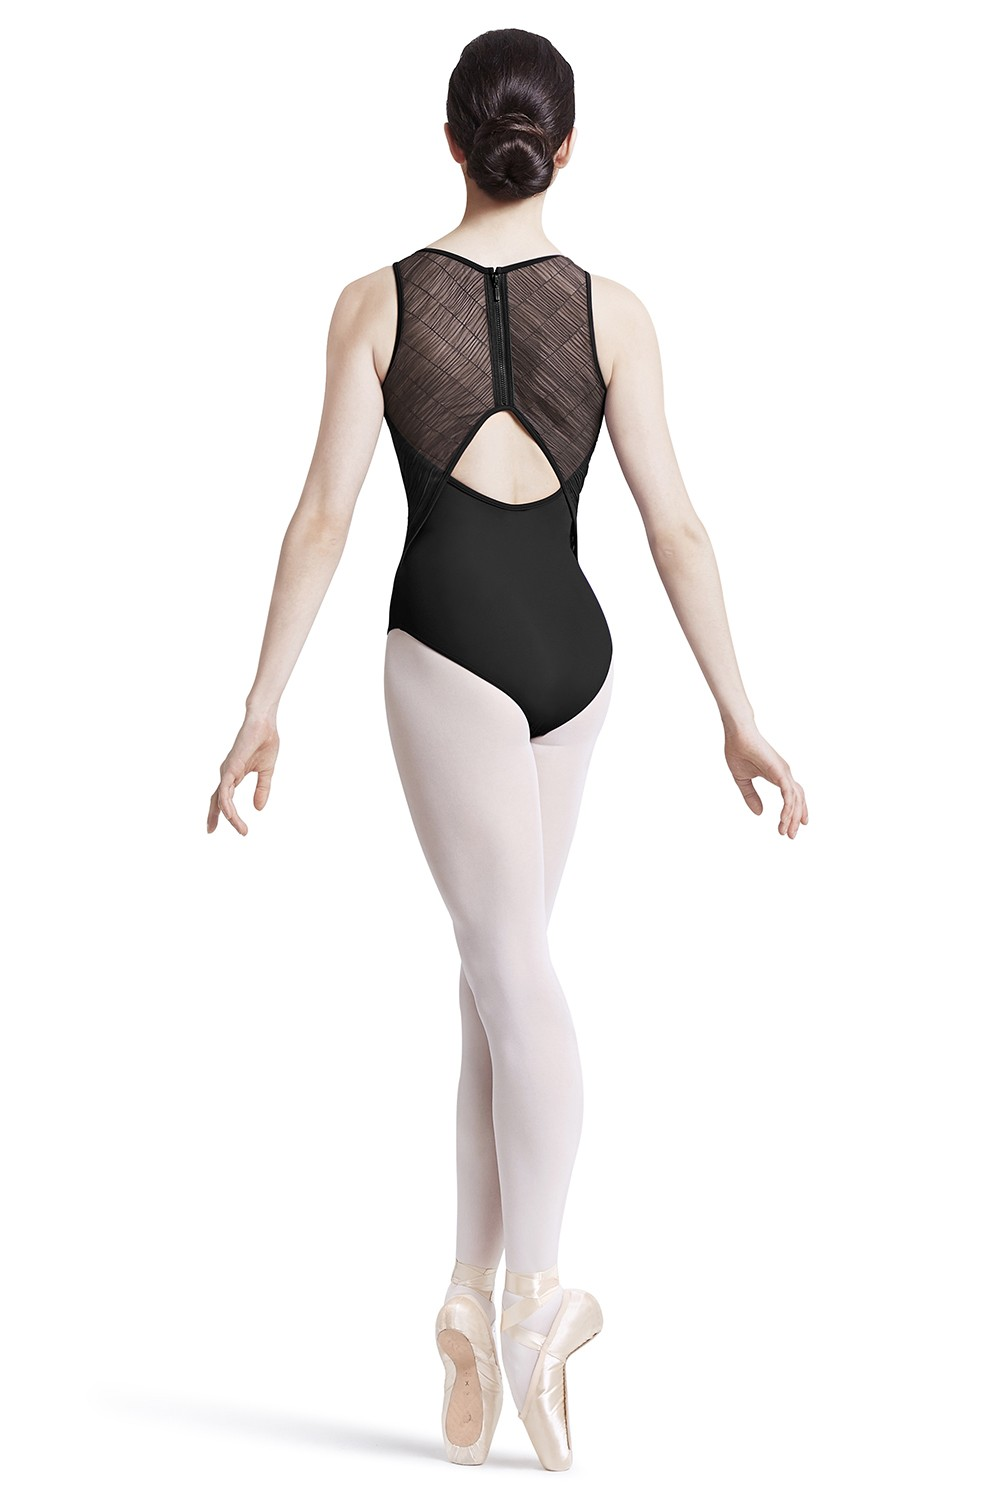 Body A Spalline Larghe Con Cerniera Sul Retro Women's Dance Leotards